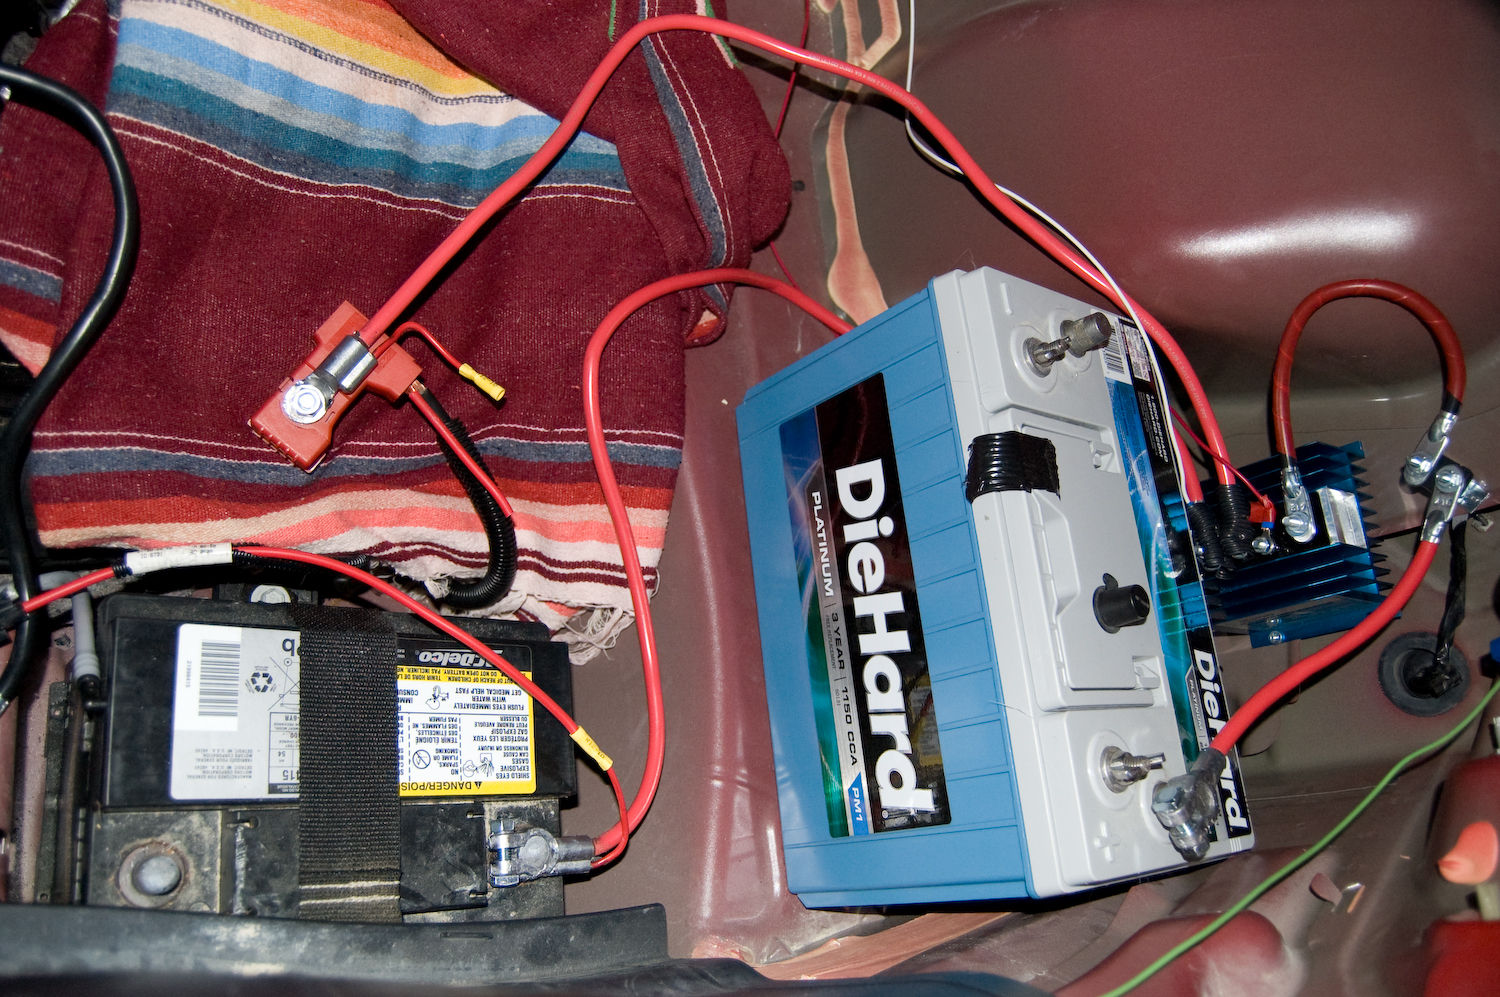 Wiring Diagram As Well Delco Starter Generator Wiring Diagram